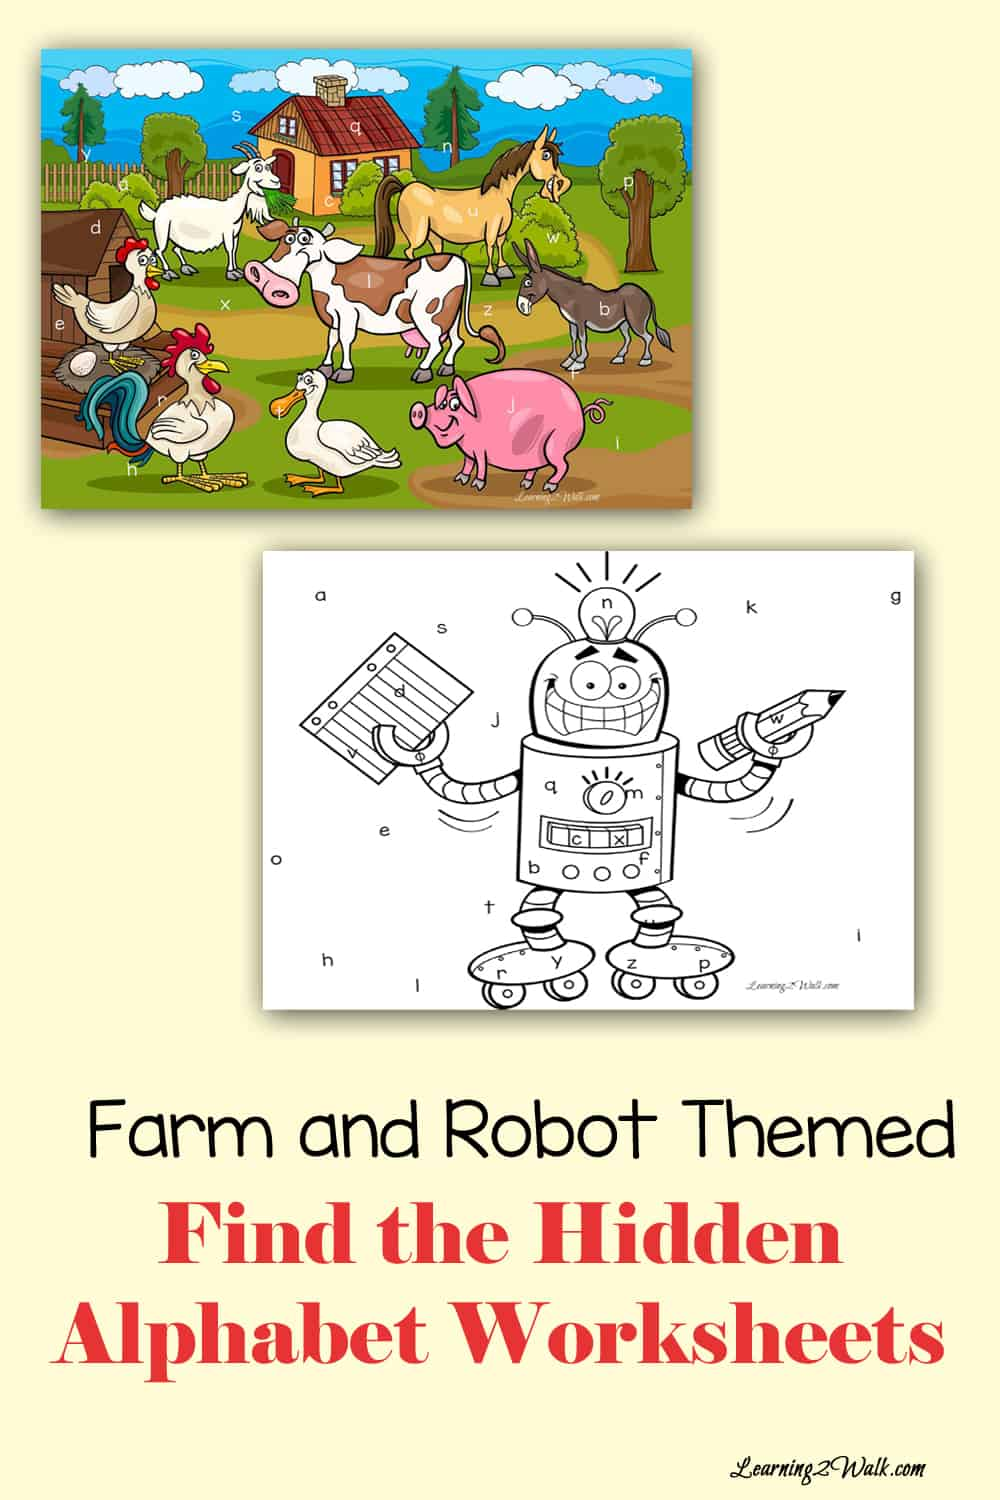 Worksheet Use Of This And That Worksheet For Kids robot alphabet worksheets find the hidden letters working on of use these farm and to help